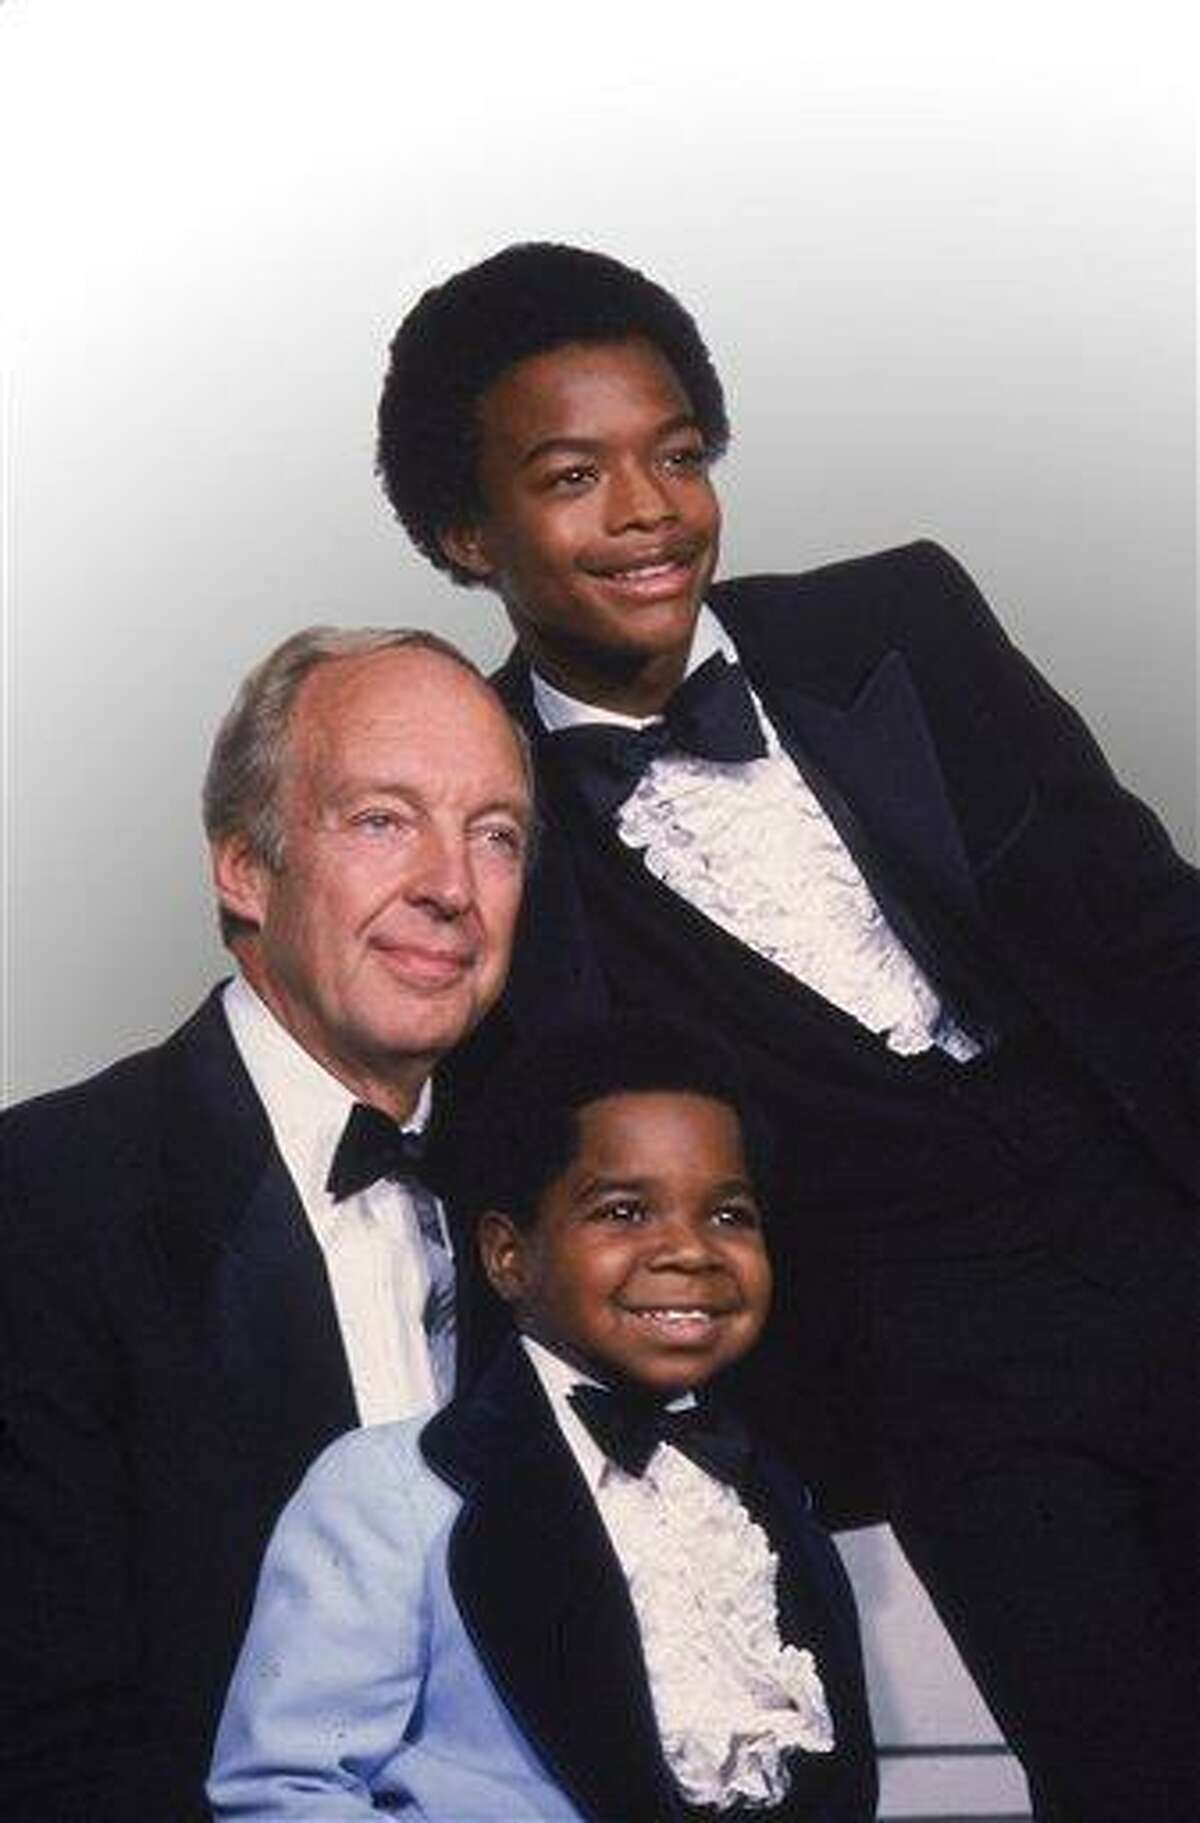 FILE - This Sept. 13, 1981 file photo shows stars of the television show